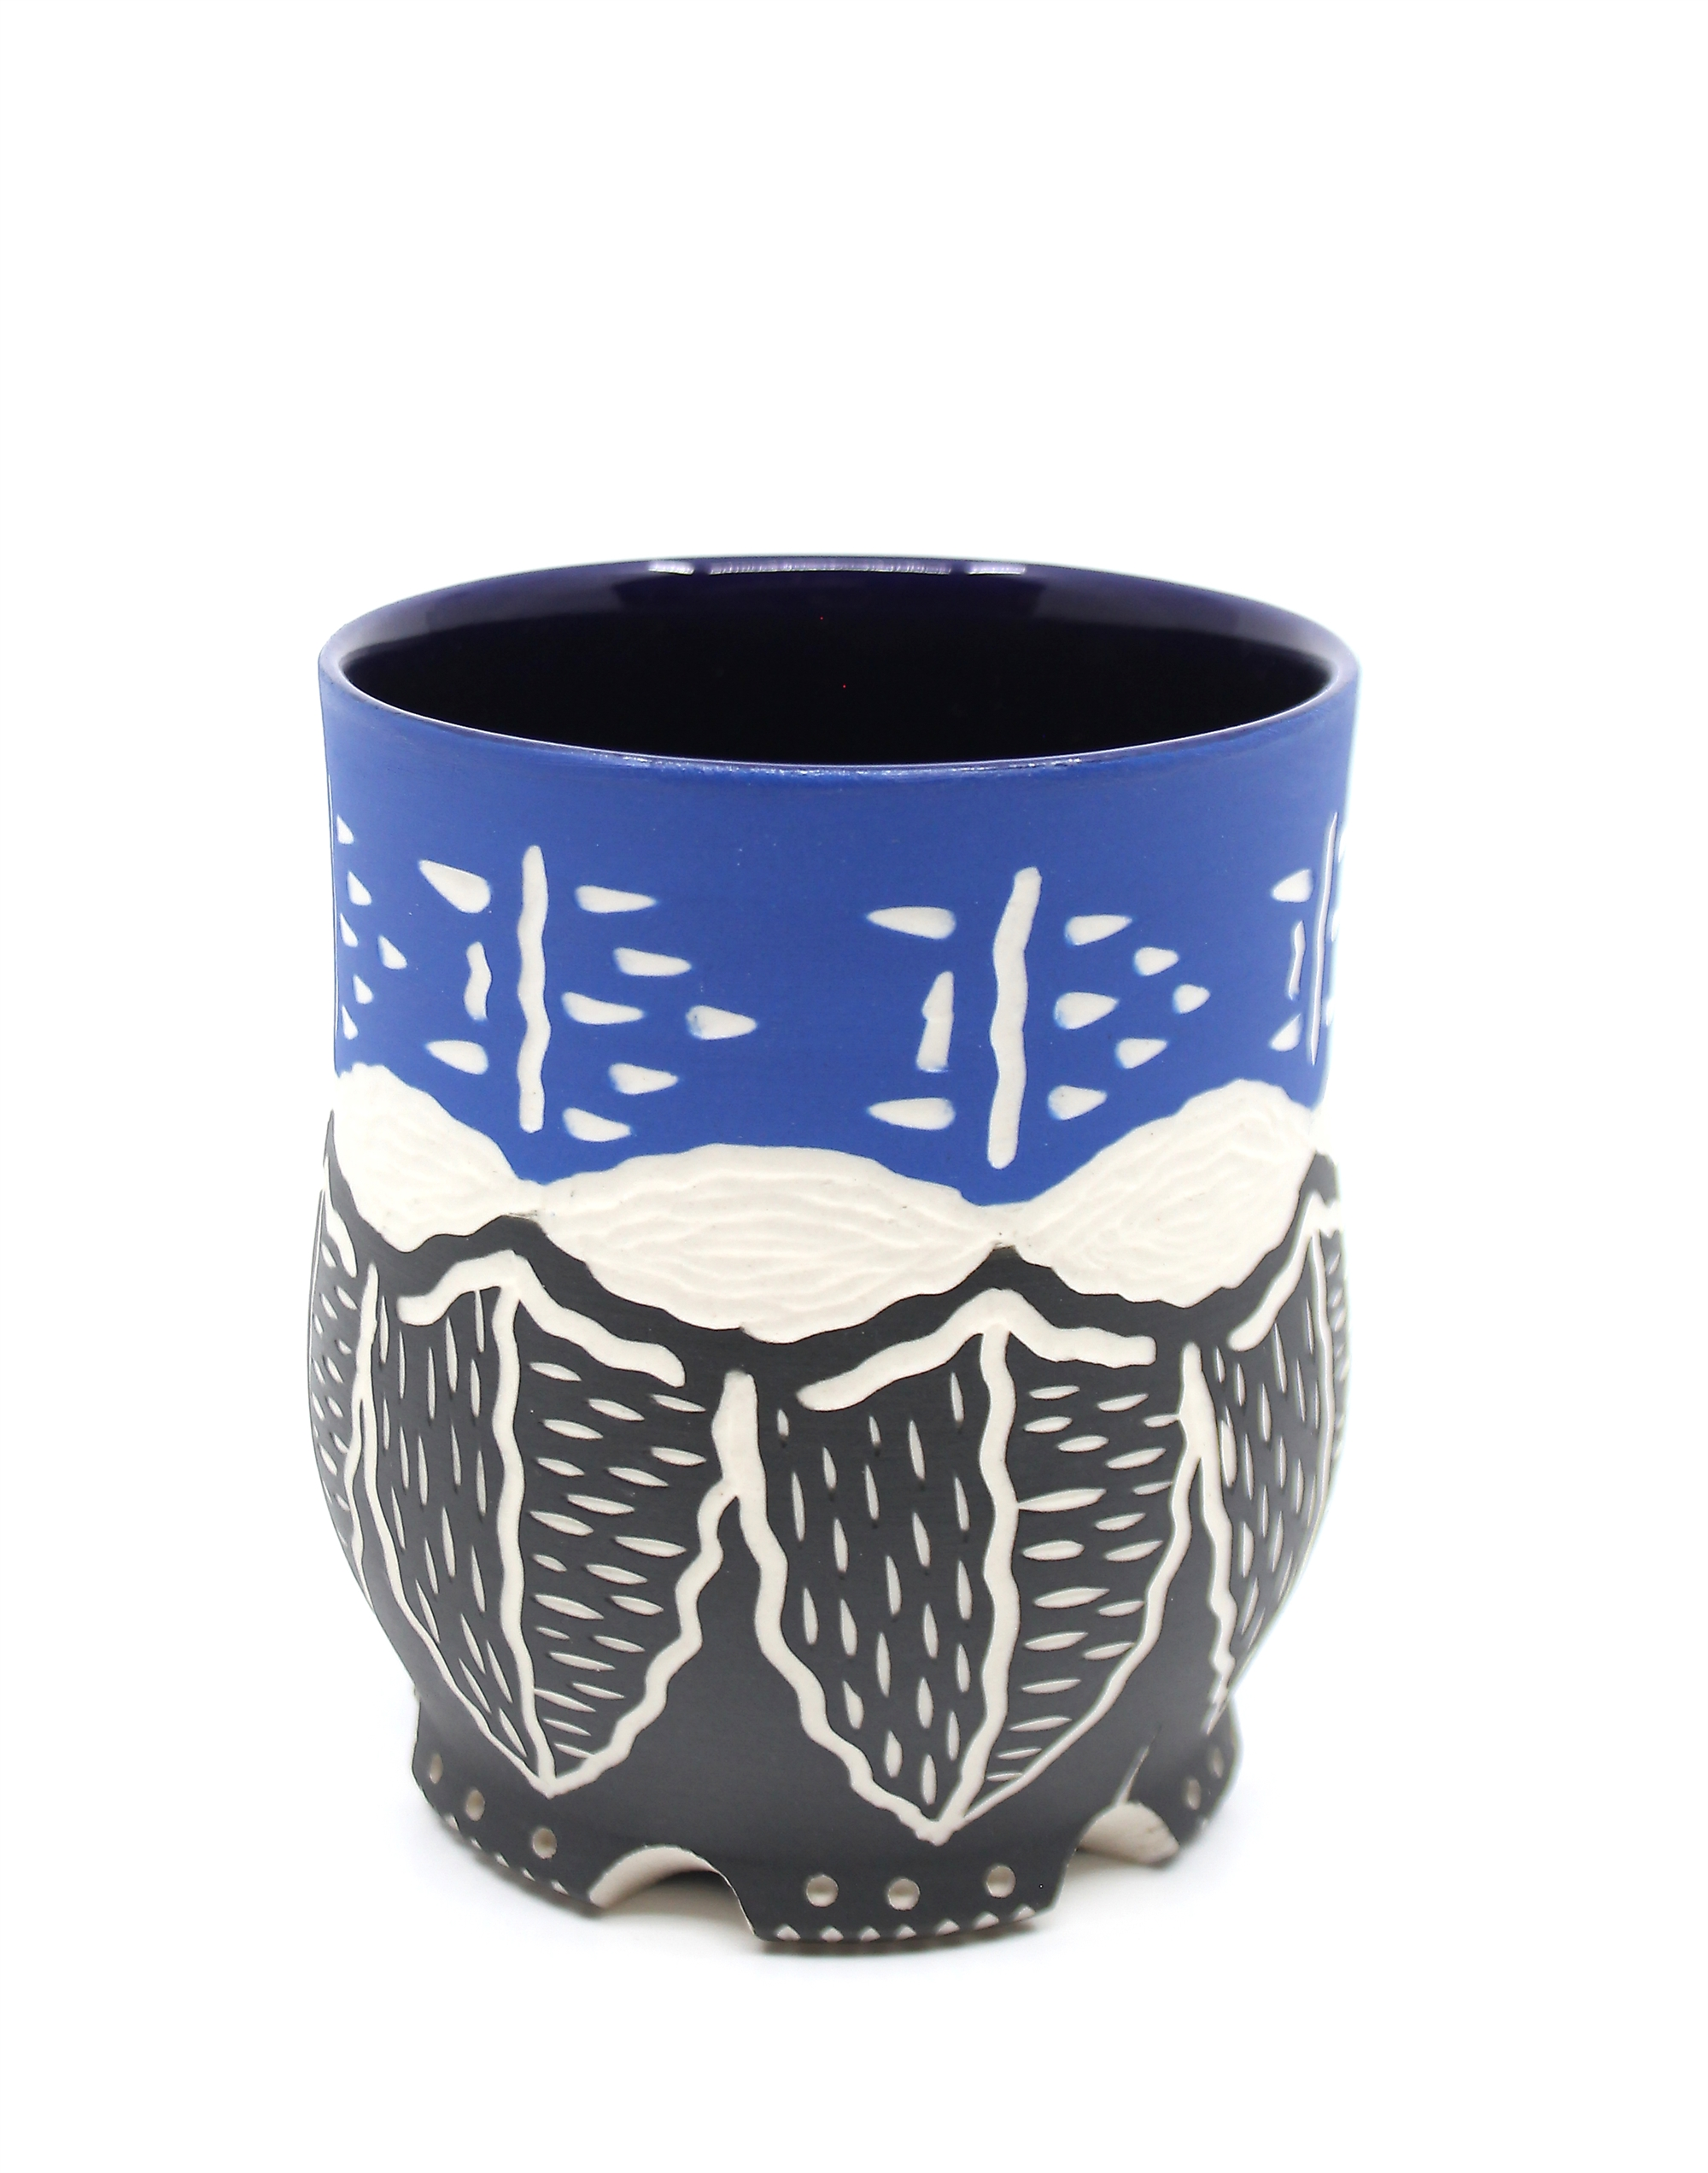 Blue & Black Cup by Chris Casey